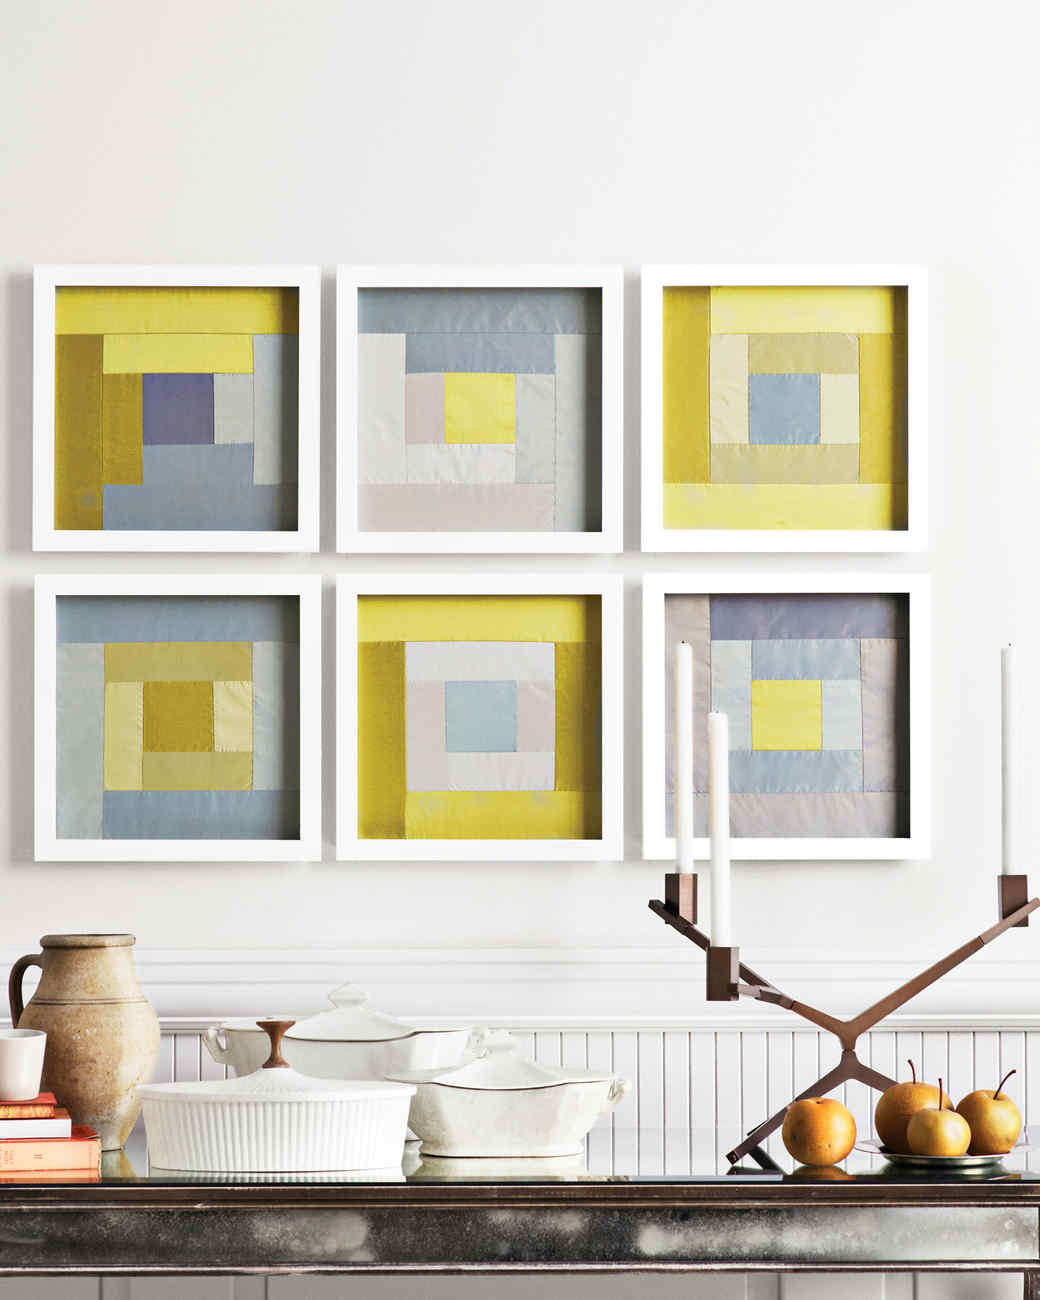 Uncategorized Art Framing Ideas nailed it budget friendly wall art and framing ideas martha stewart abstract inspiration